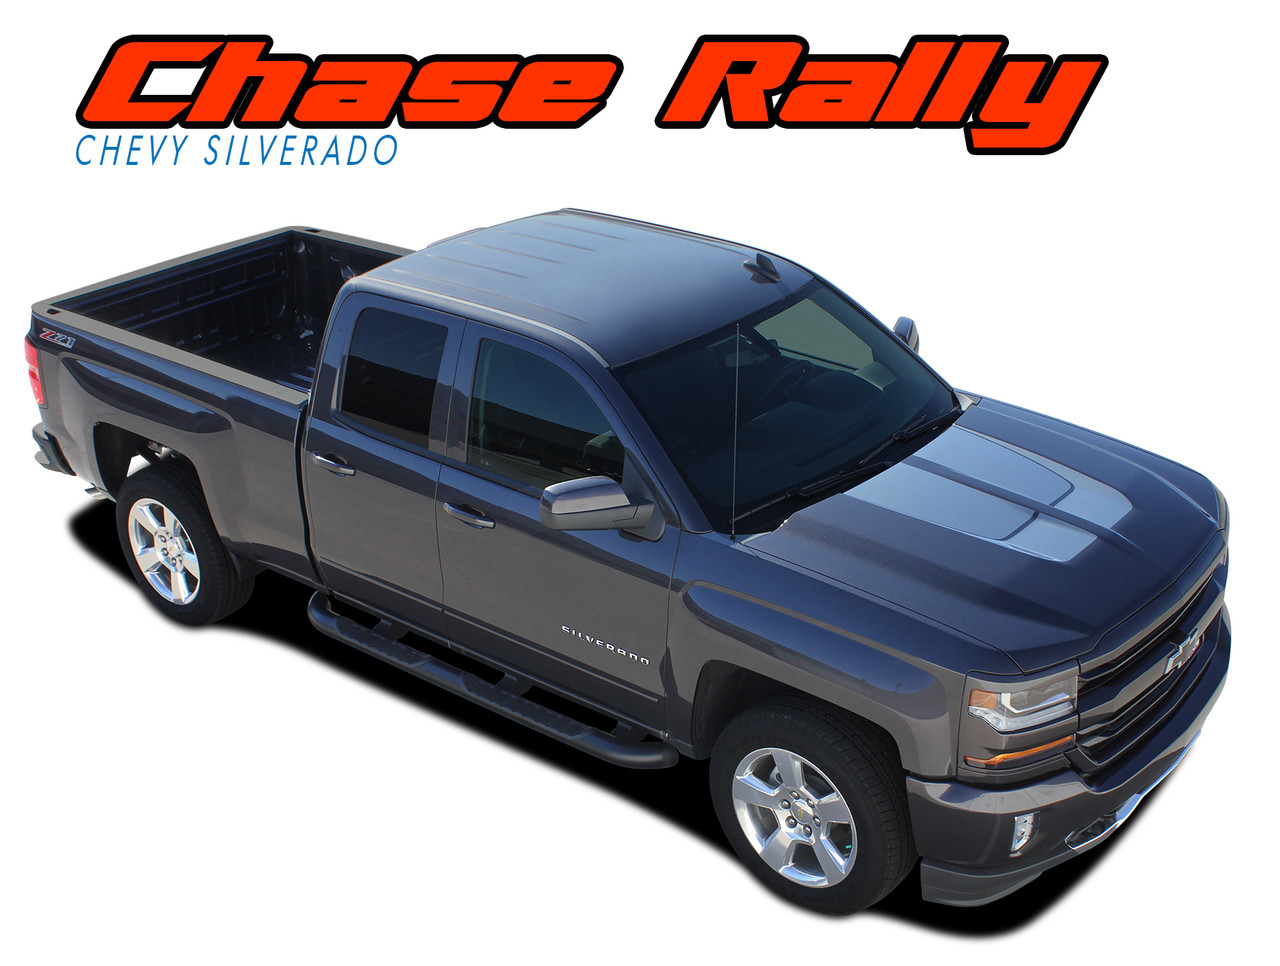 medium resolution of chase rally 2016 2017 2018 chevy silverado rally edition style hood tailgate vinyl graphic decal racing stripe kit vgp 3941